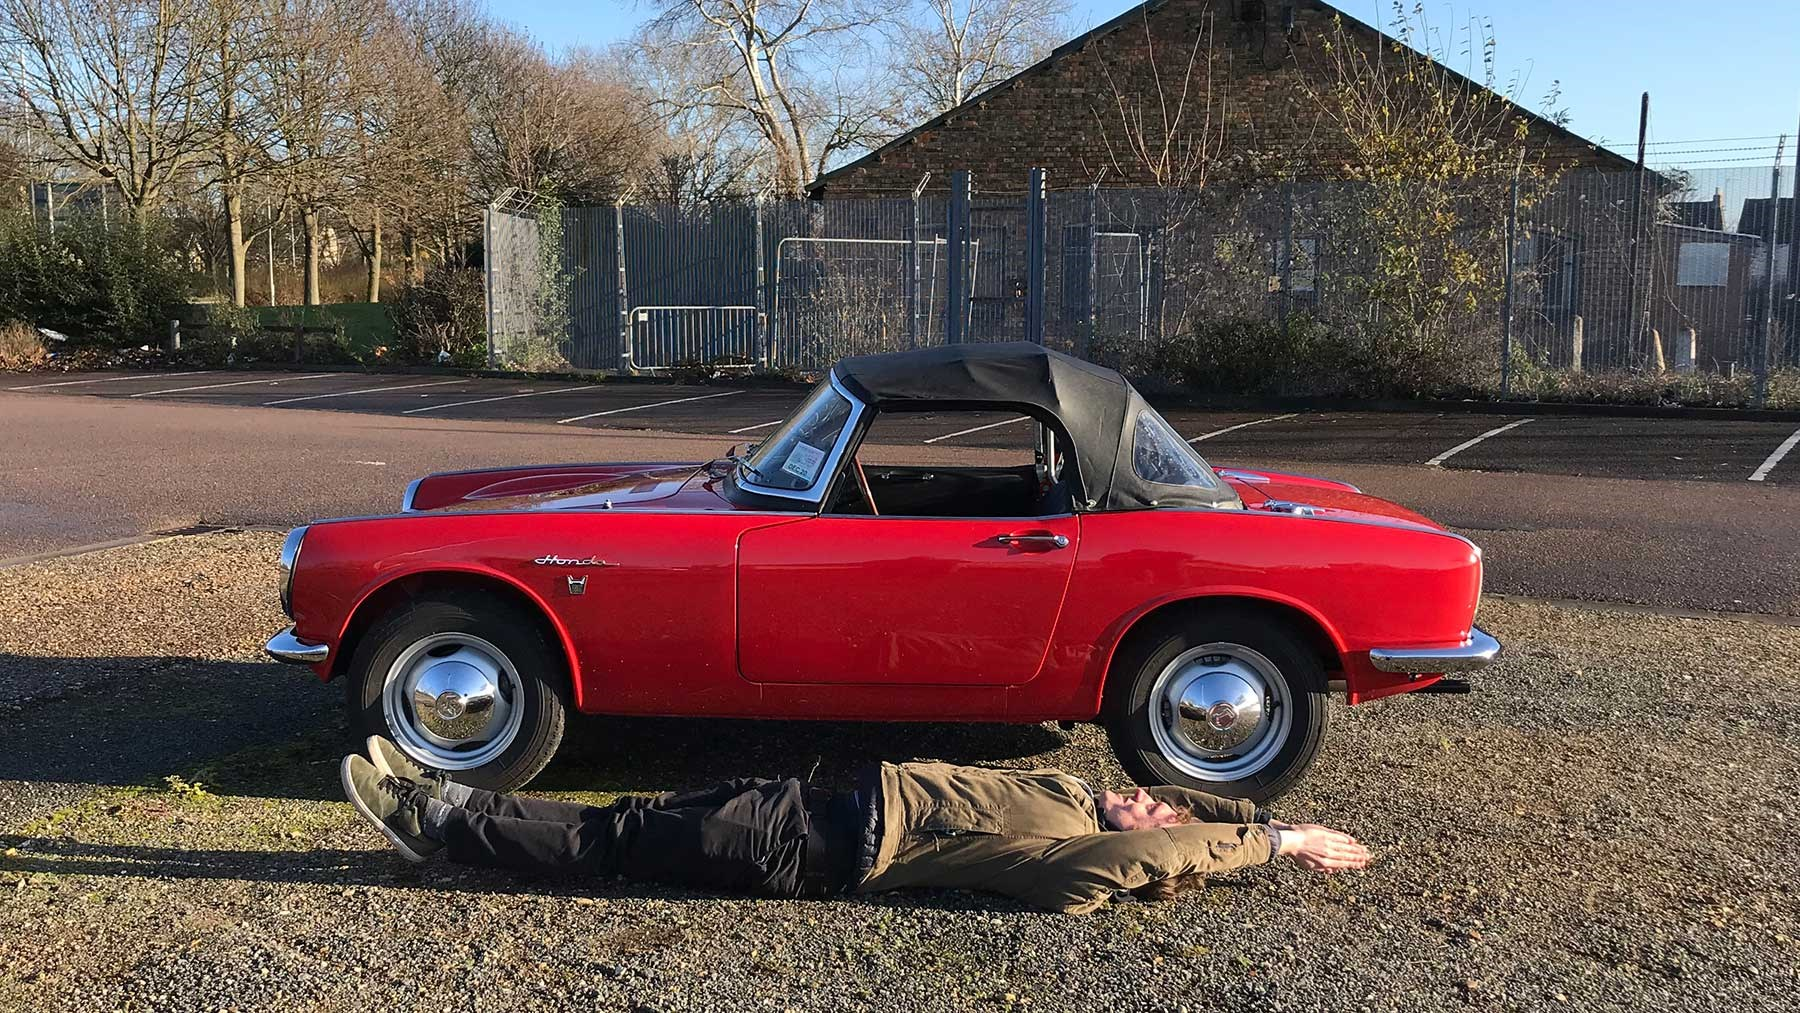 Honda S800 is small: CAR magazine's James Taylor for scale!